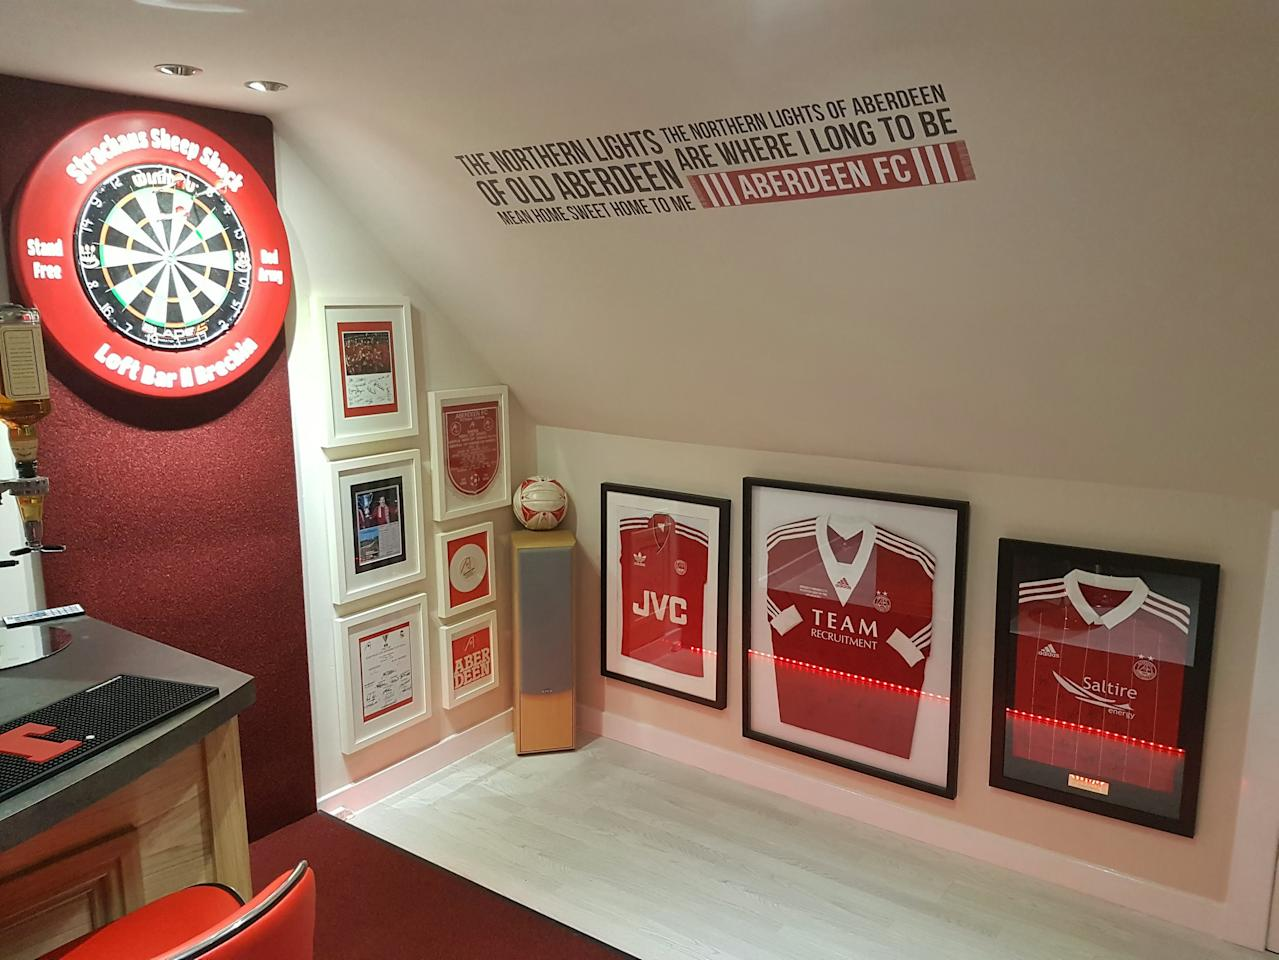 <p>The walls feature quotes about Aberdeen, the last Scottish winners of a European trophy and the last winners of the Scottish top flight league outside the Old Firm. </p>